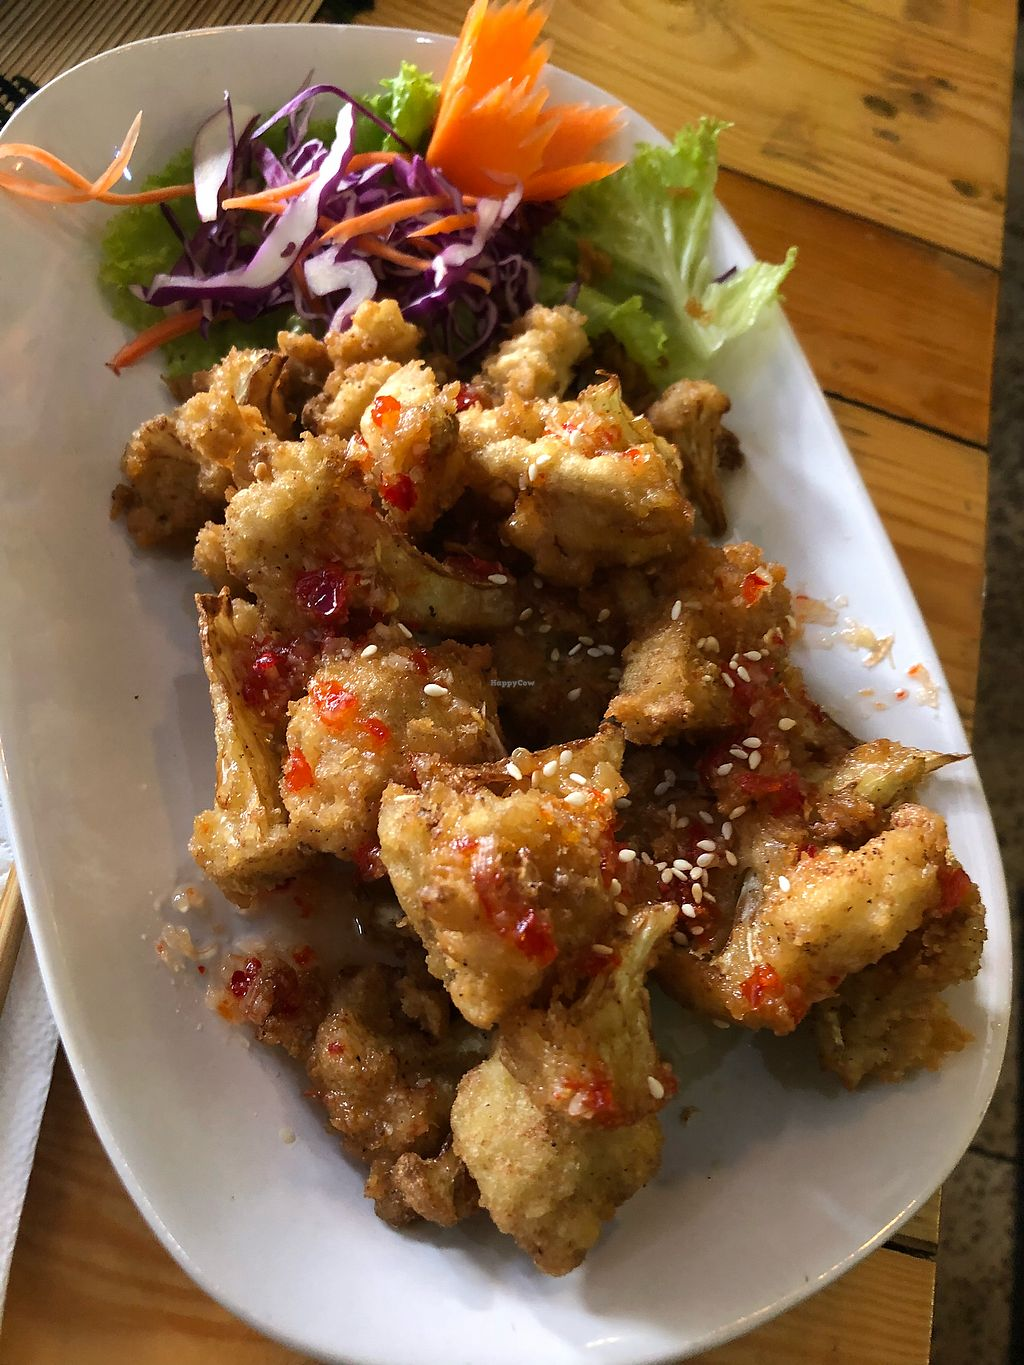 """Photo of Taste from Heaven  by <a href=""""/members/profile/VeganTraveler5"""">VeganTraveler5</a> <br/>Spicy cauliflower wings <br/> December 31, 2017  - <a href='/contact/abuse/image/14253/341258'>Report</a>"""